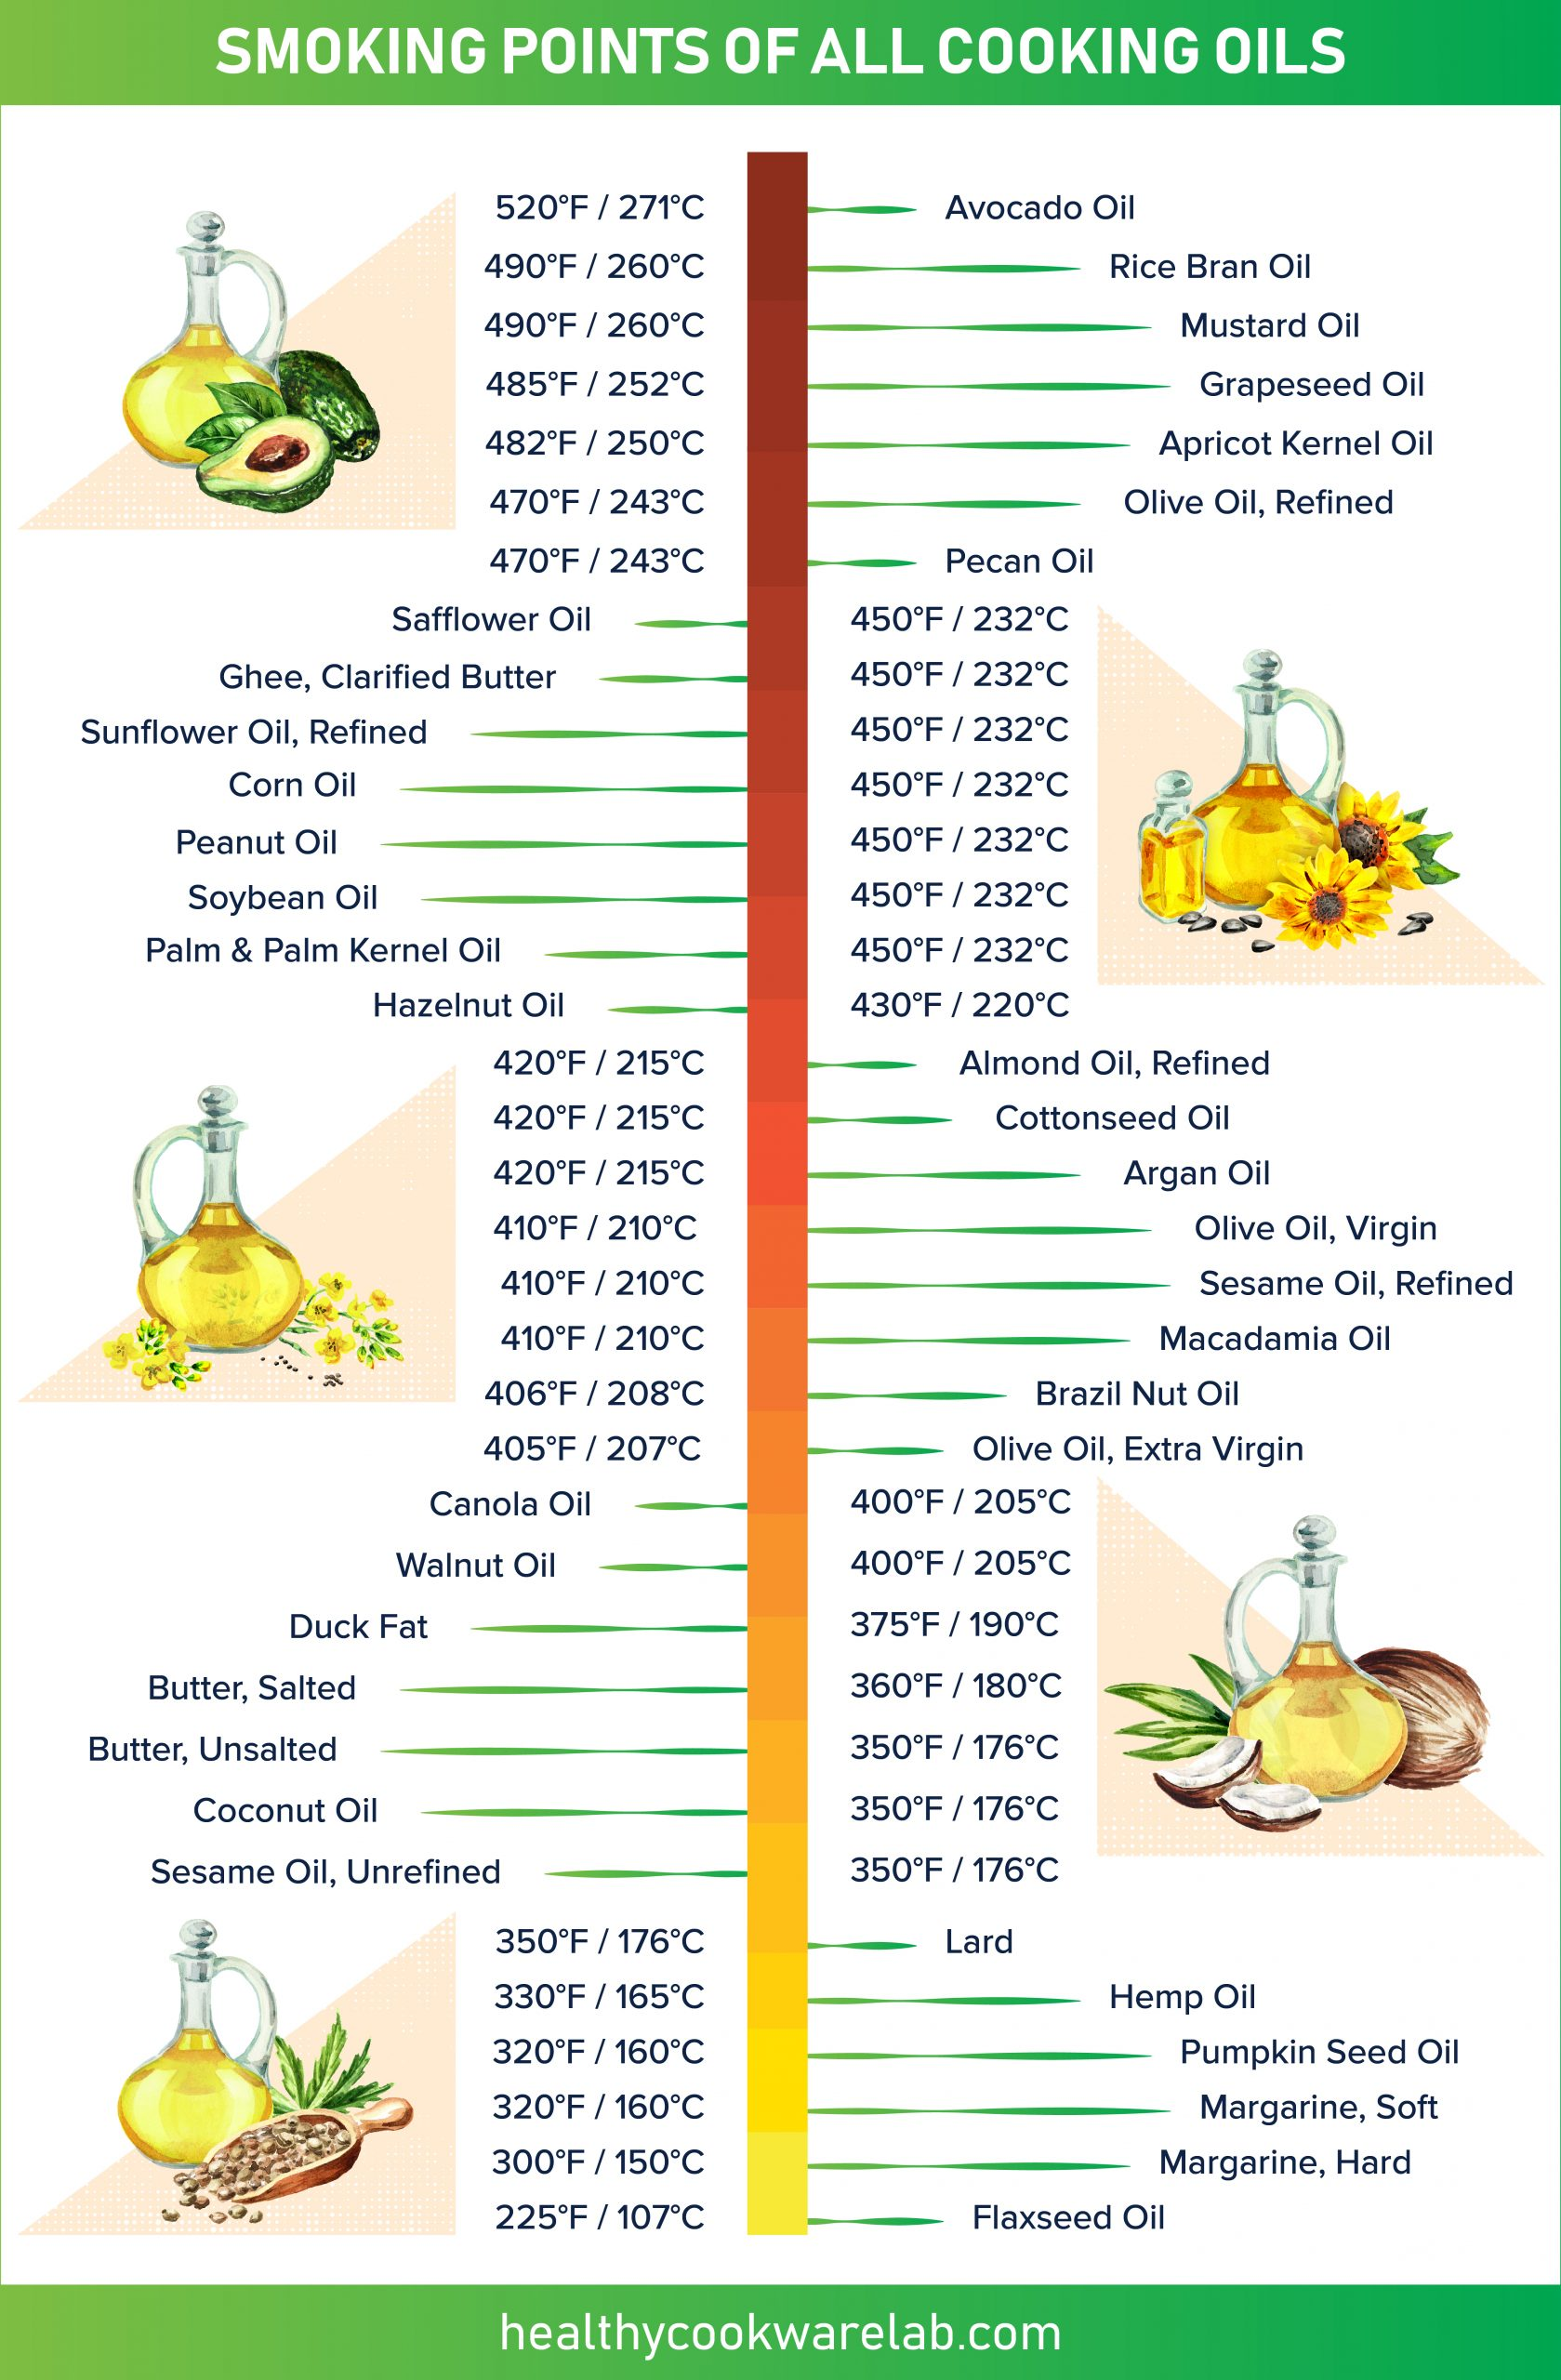 infographic smoking points of common cooking oils and fats